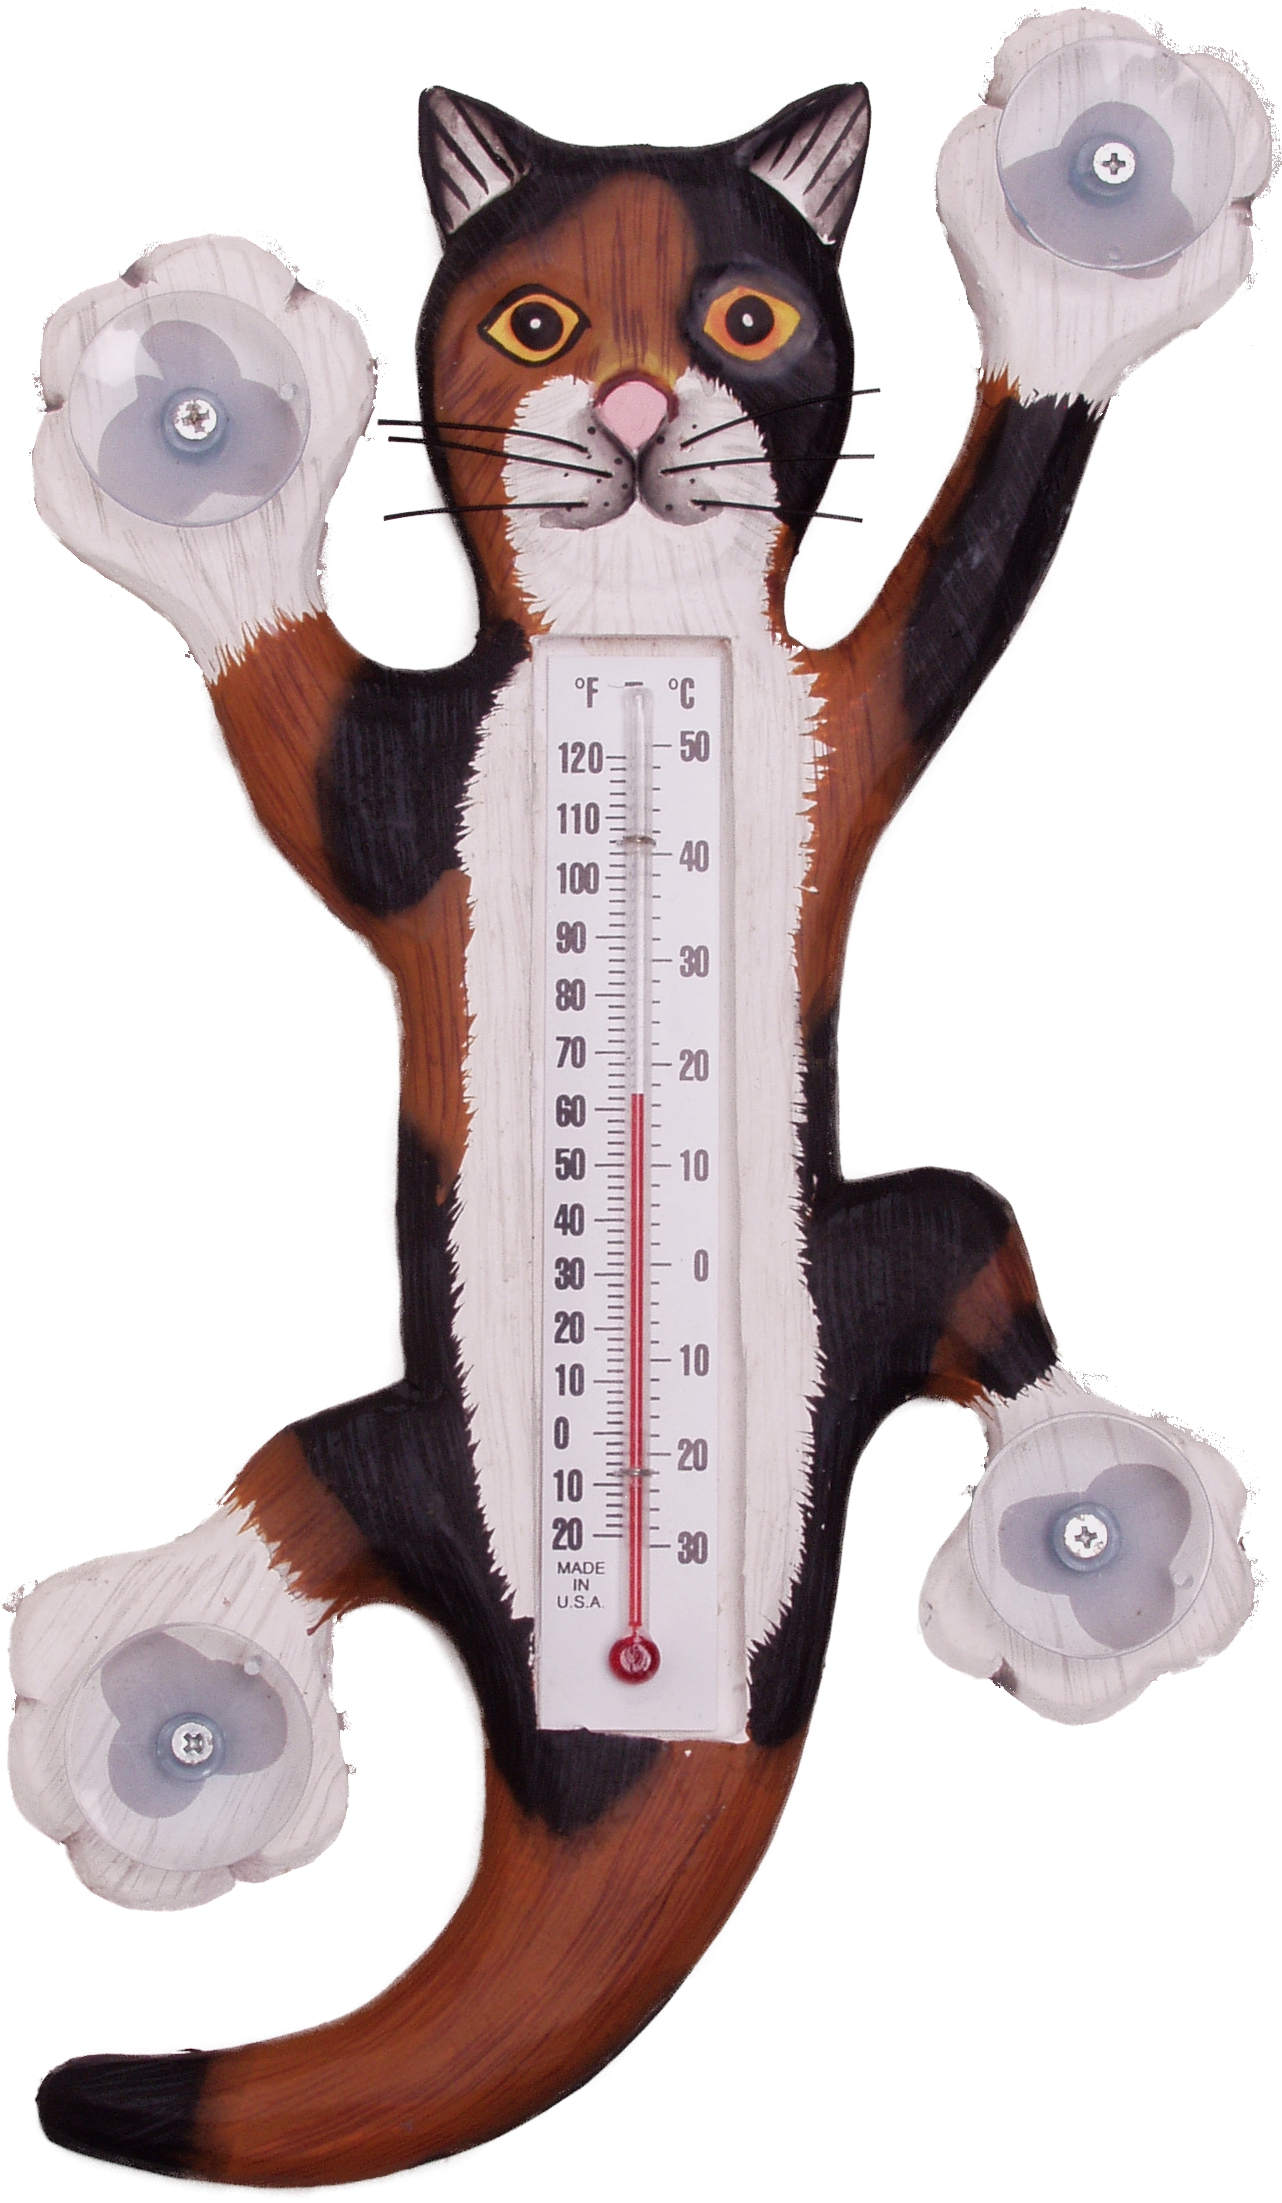 Climbing Calico Cat Large Window Thermometer